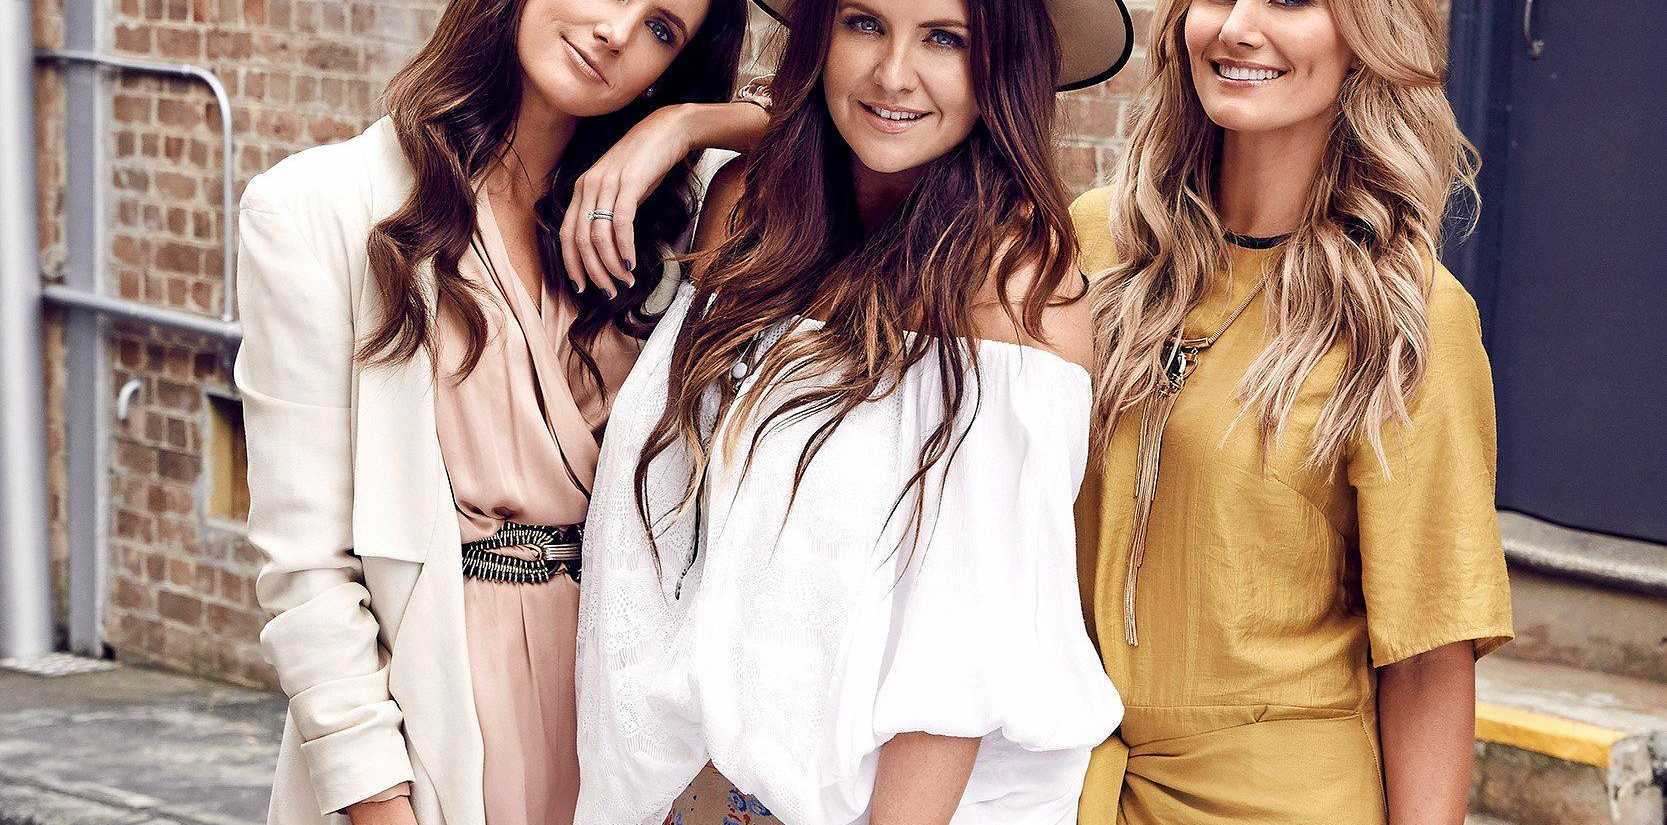 SISTER ACT: The McClymonts will perform a special concert at the Saraton Theatre as part of the 2019 Jacaranda Festival celebrations.